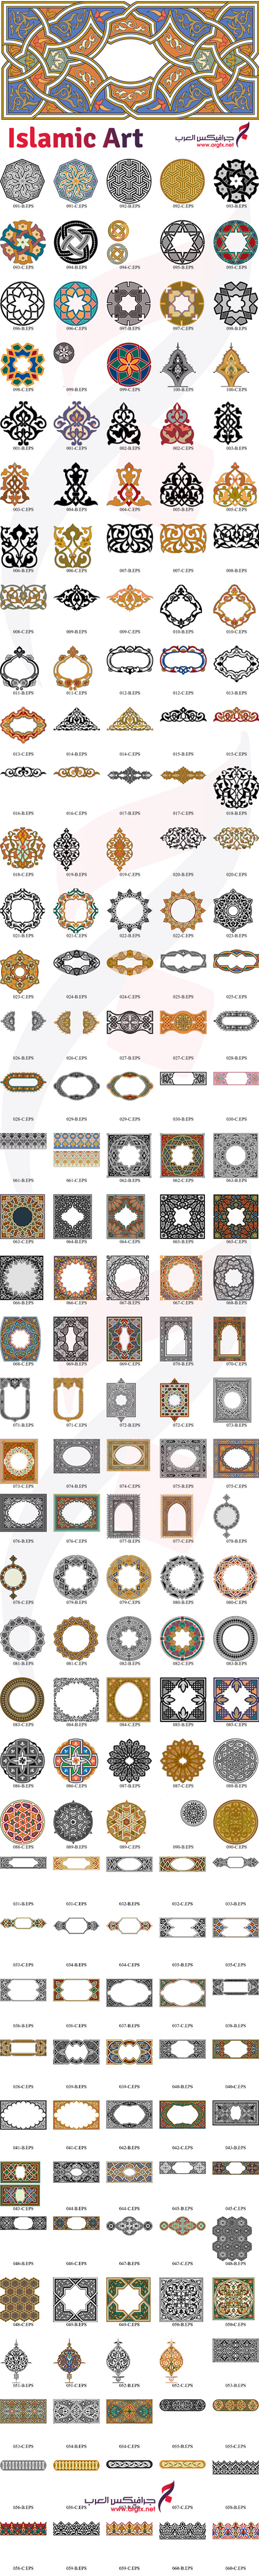 Islamic Art - Vector